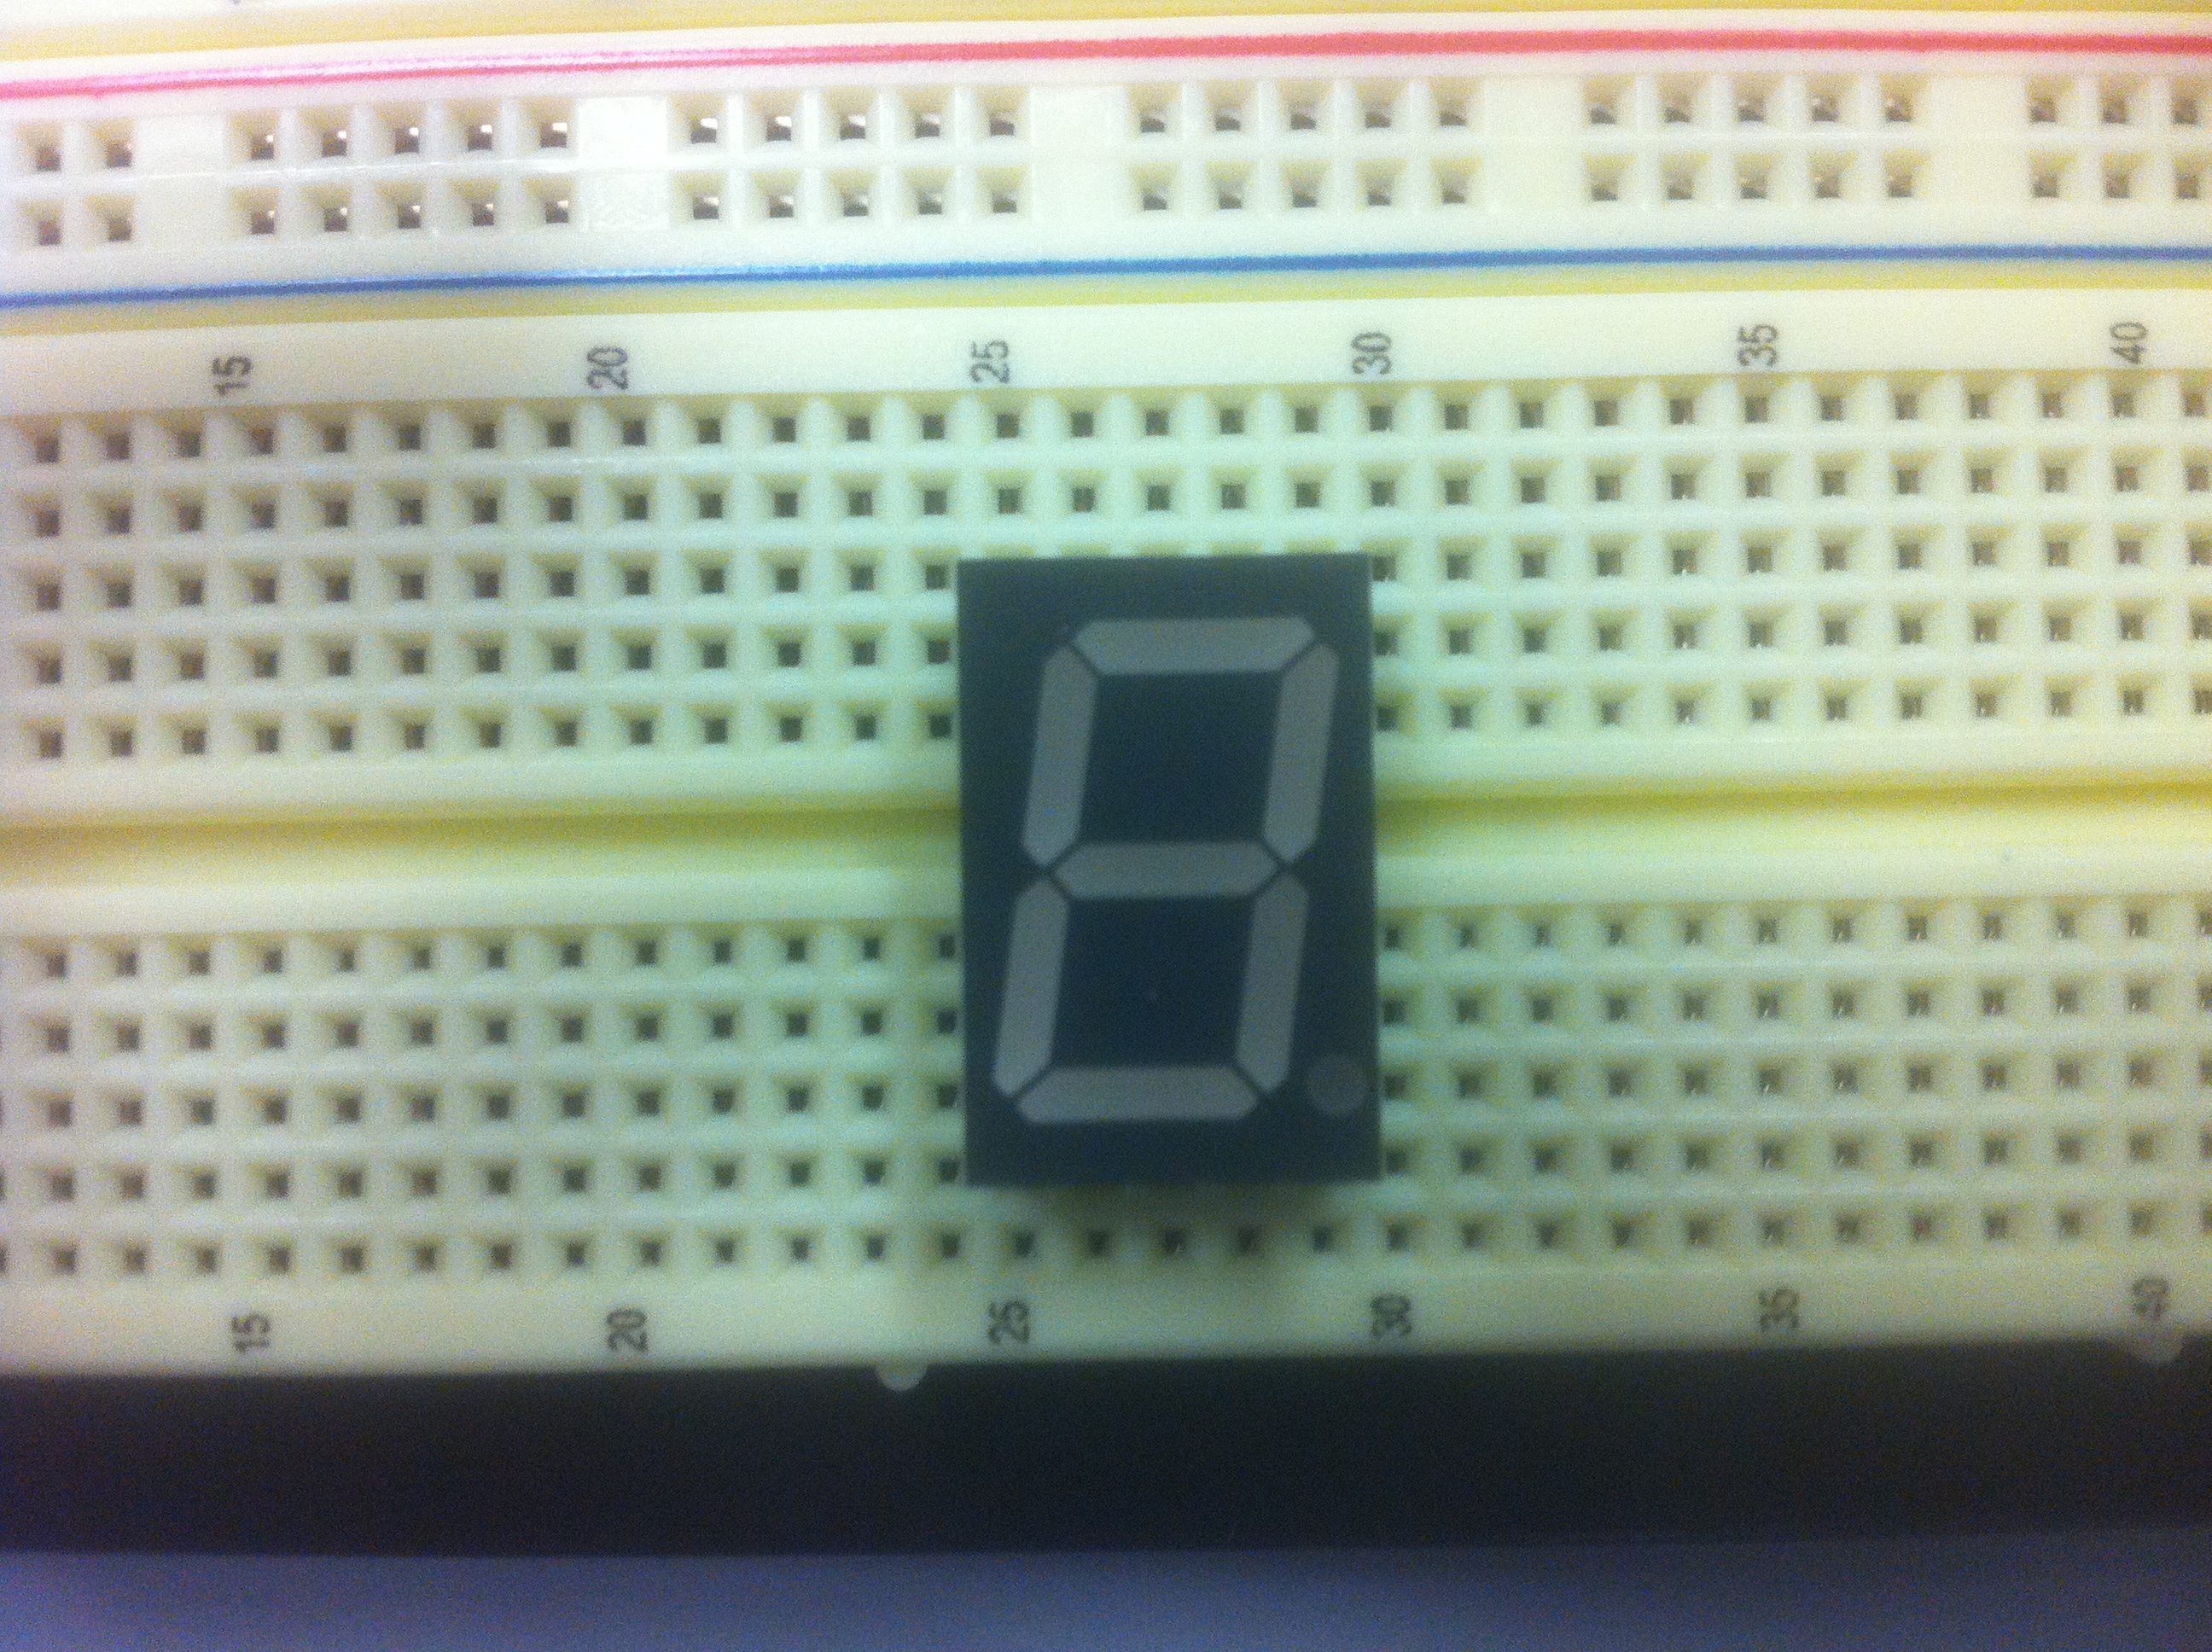 Circuit1 Counter Using 7 Segment Display Public Circuit Online Be Careful That You Should Not Let The Wires Touch Each Other Otherwise It May Result In Short And Overheat Some Parts